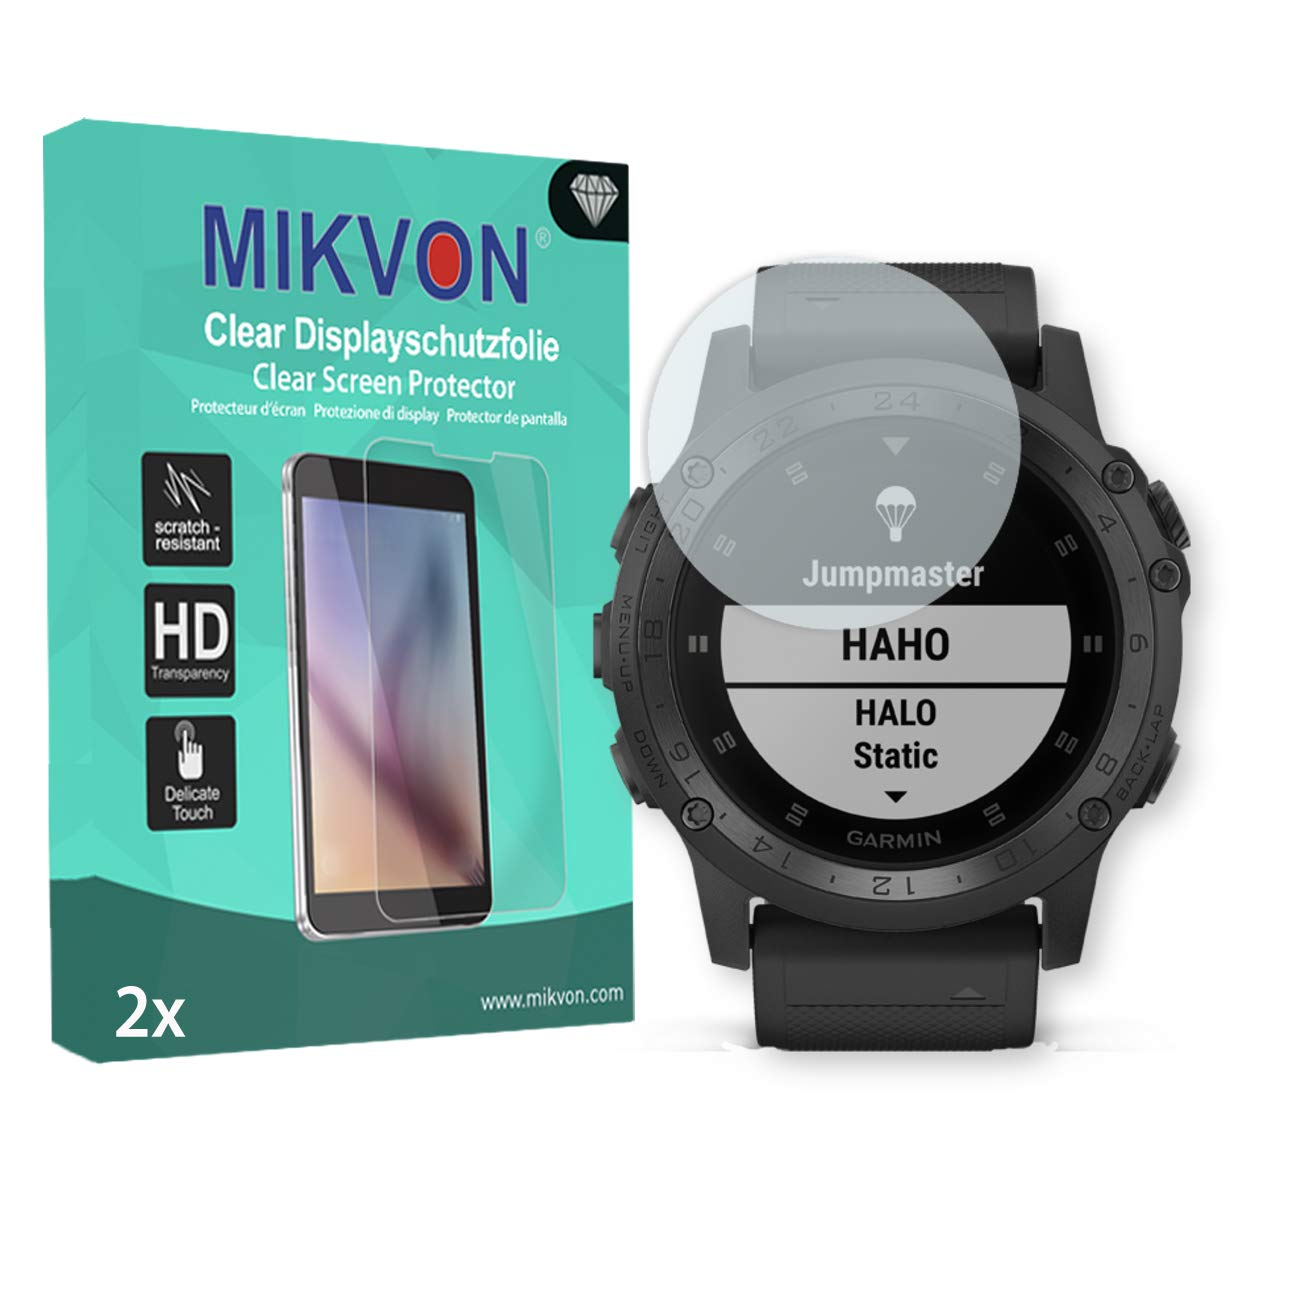 MIKVON 2X Clear Screen Protector for Garmin Tactix Charlie - Retail Package with Accessories